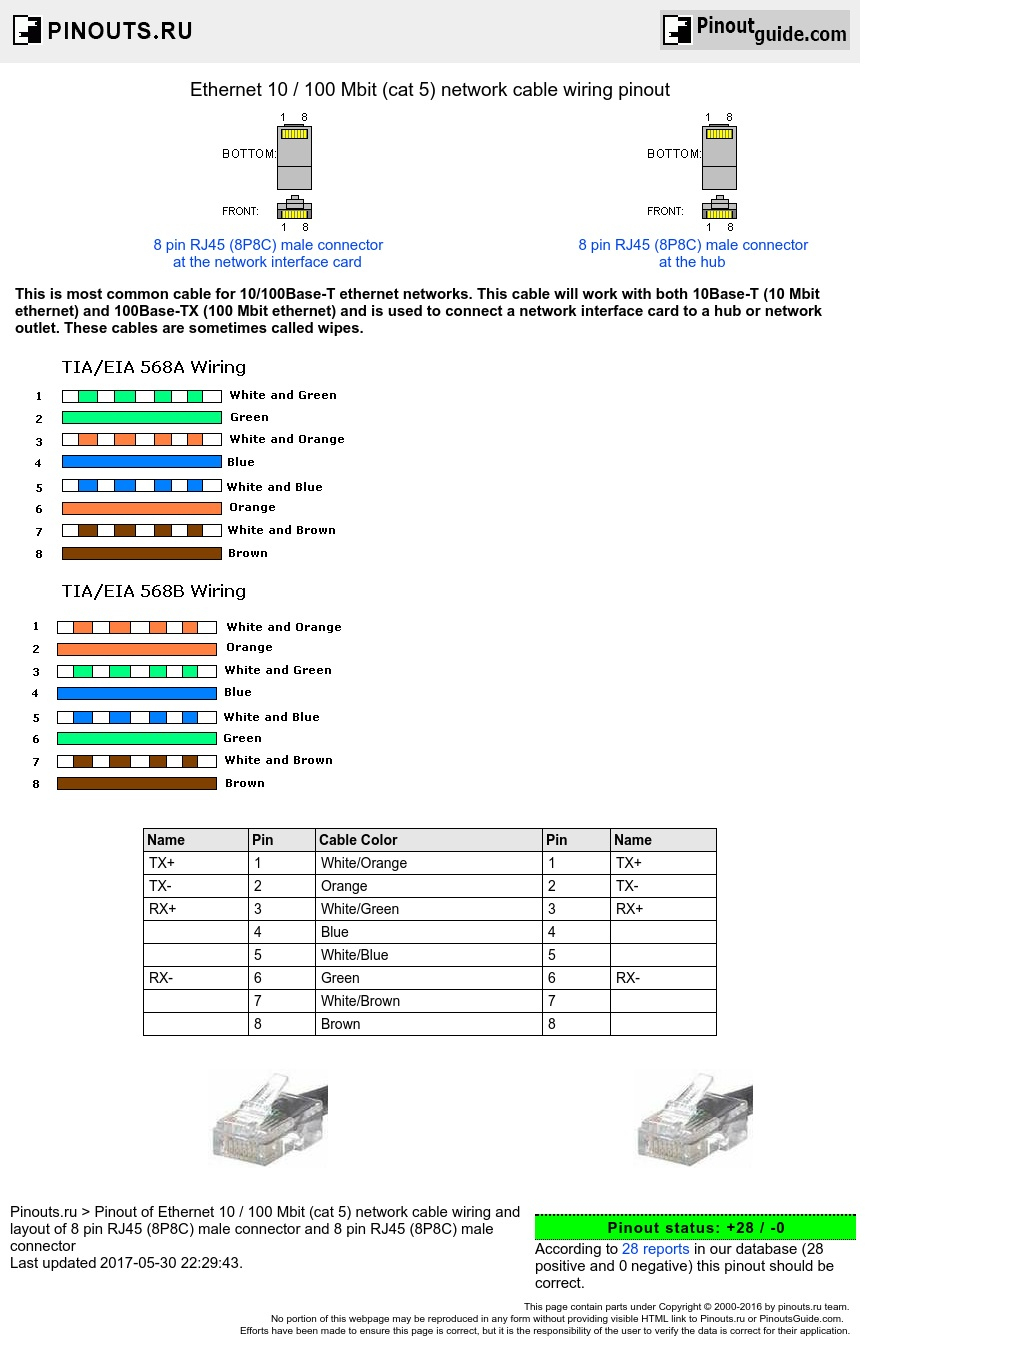 Ethernet 10 / 100 Mbit (Rj45 Cat 5) Network Cable Wiring Pinout - Wiring Diagram For Cat5 Cable